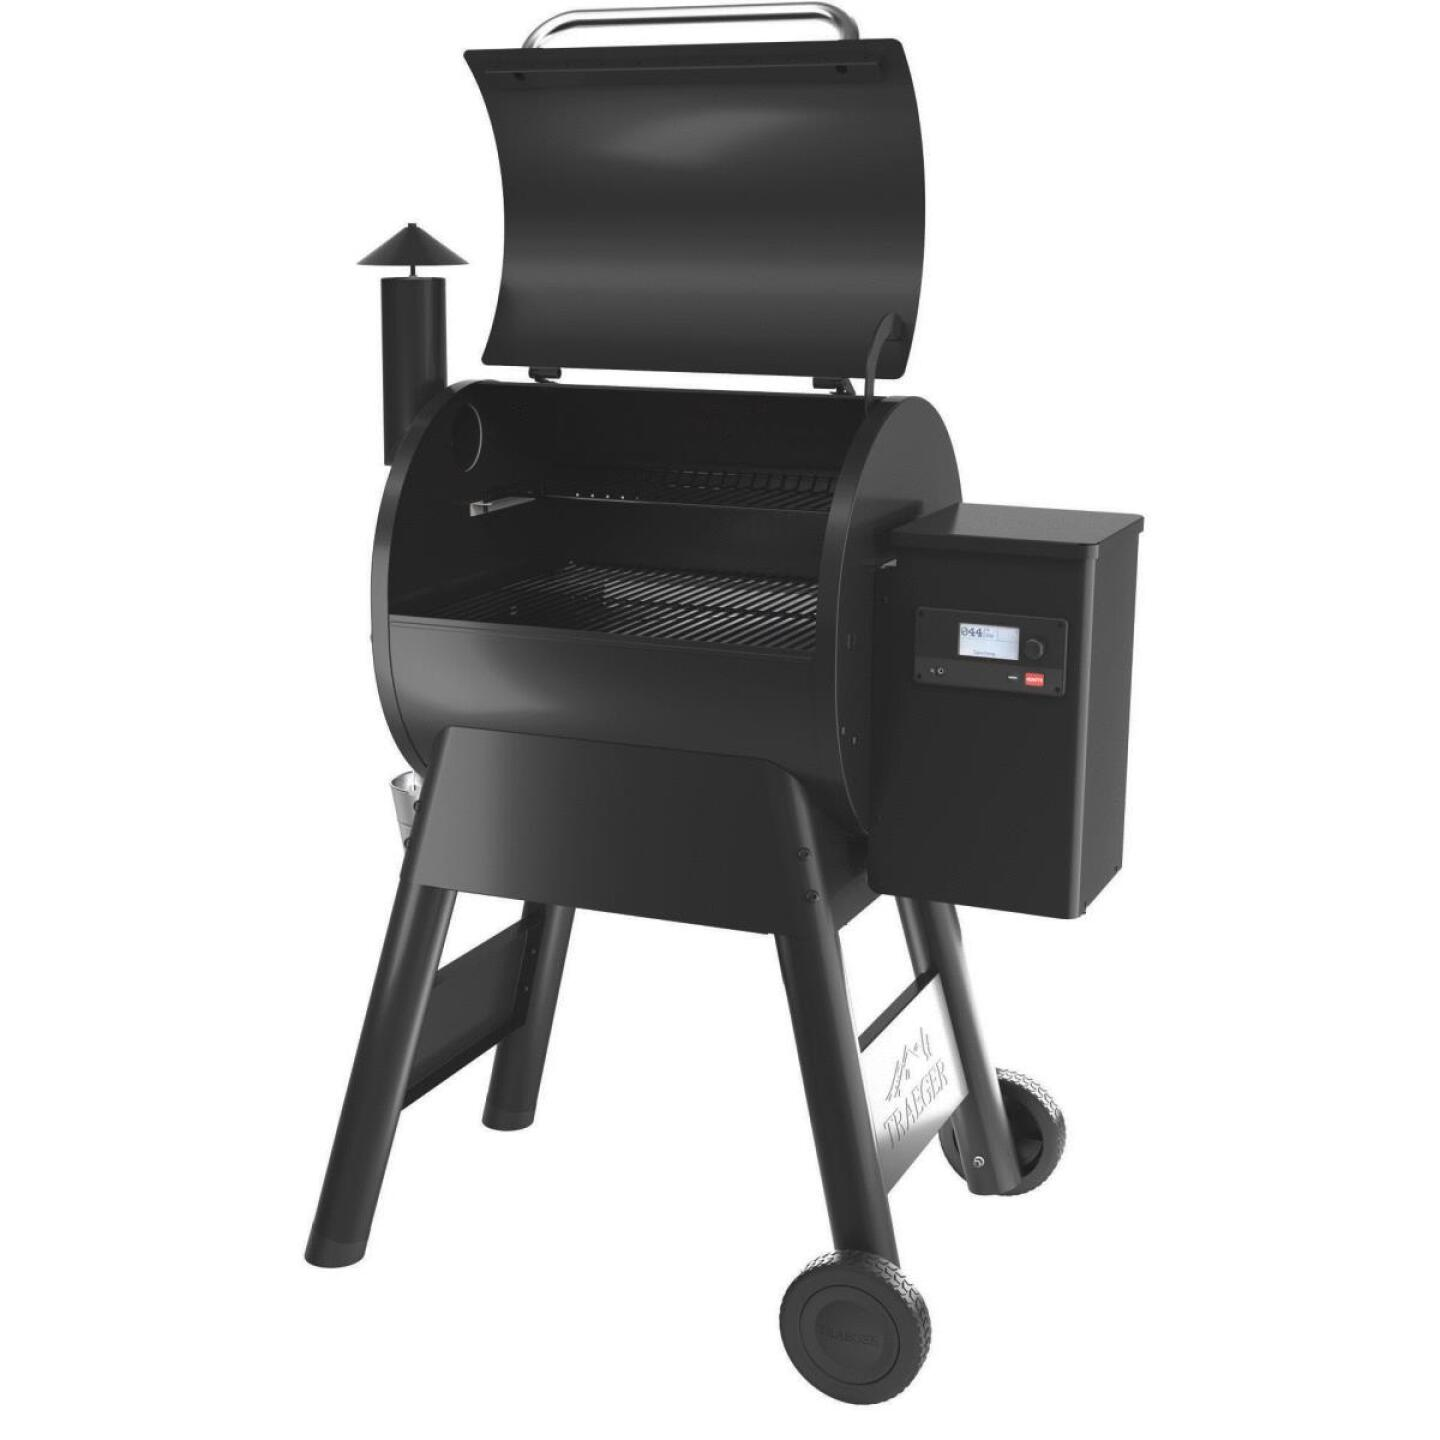 Traeger Pro 575 Black 36,000 BTU 572 Sq. In. Wood Pellet Grill Image 4